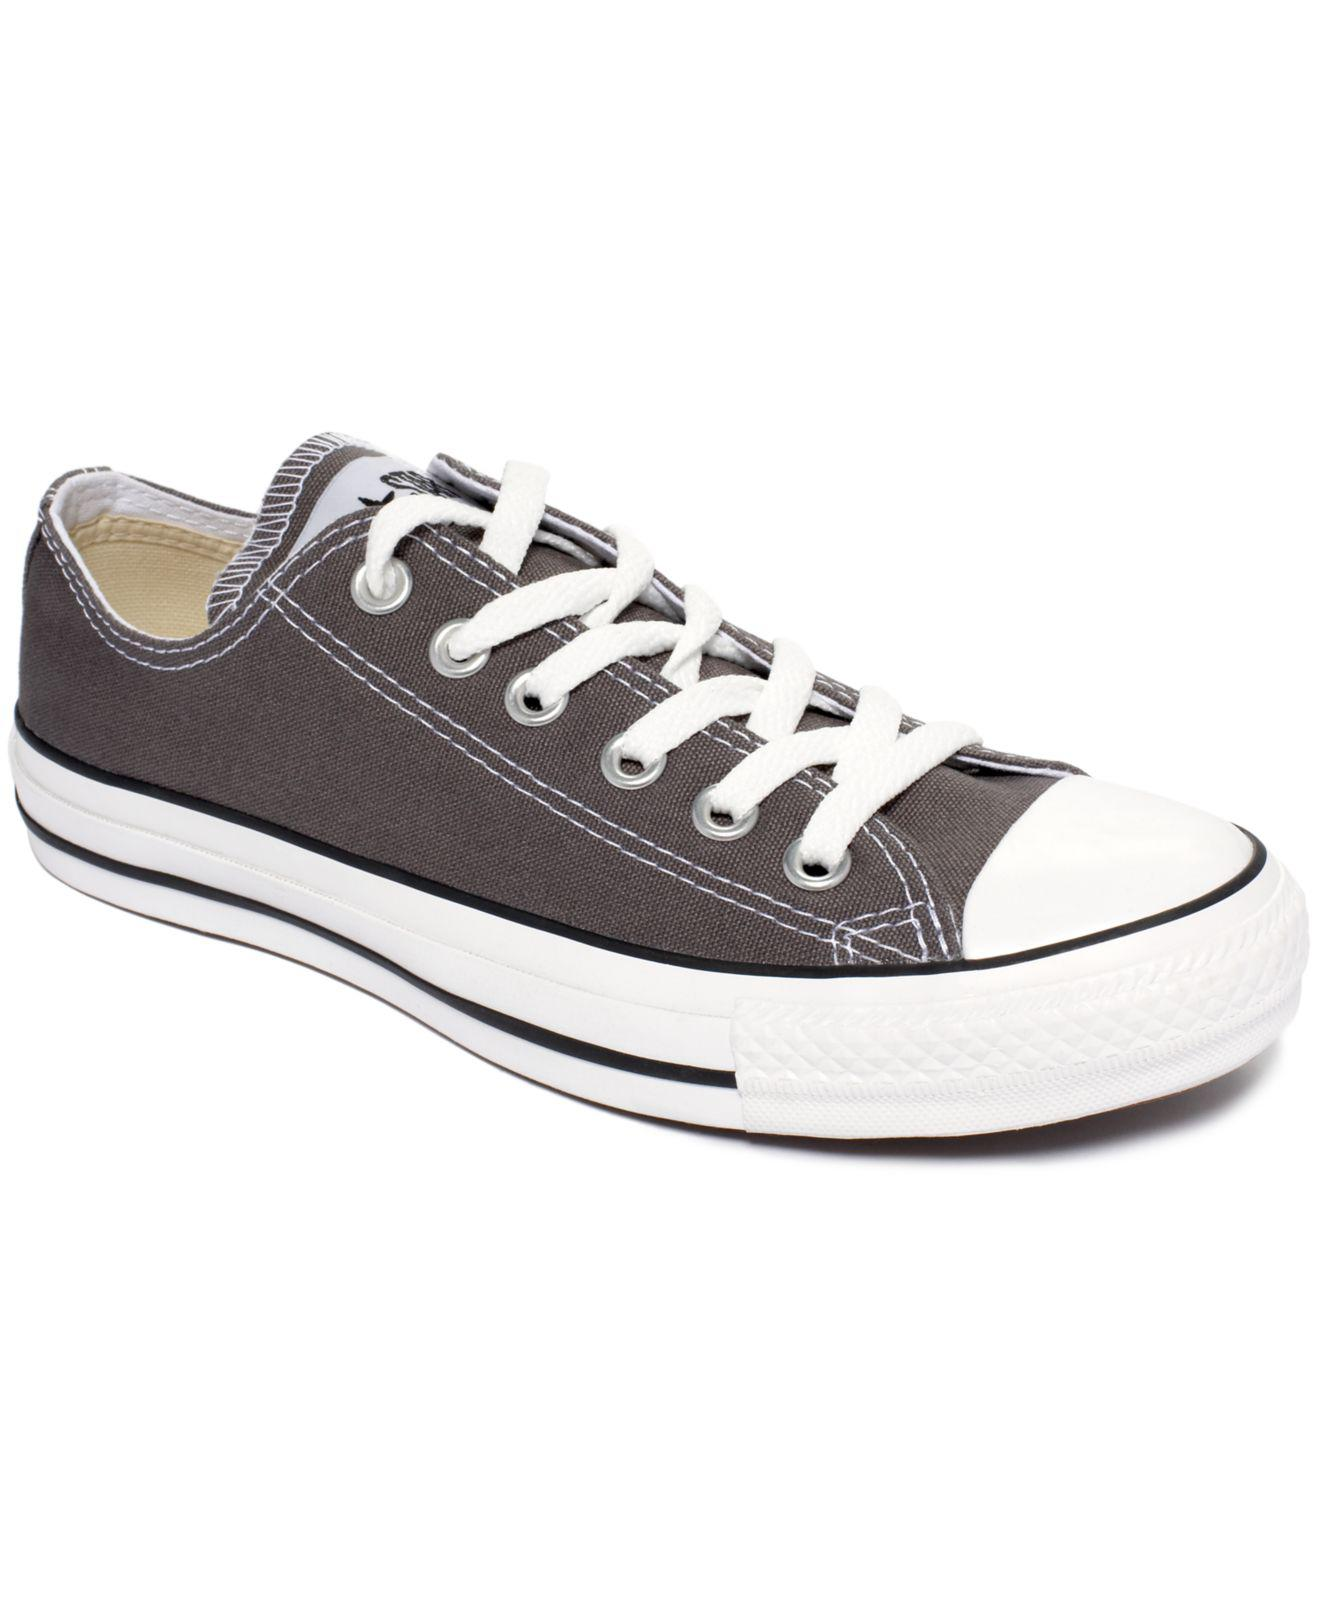 030107571a590b Converse. Gray Women s Chuck Taylor All Star Oxford Sneakers From Finish  Line